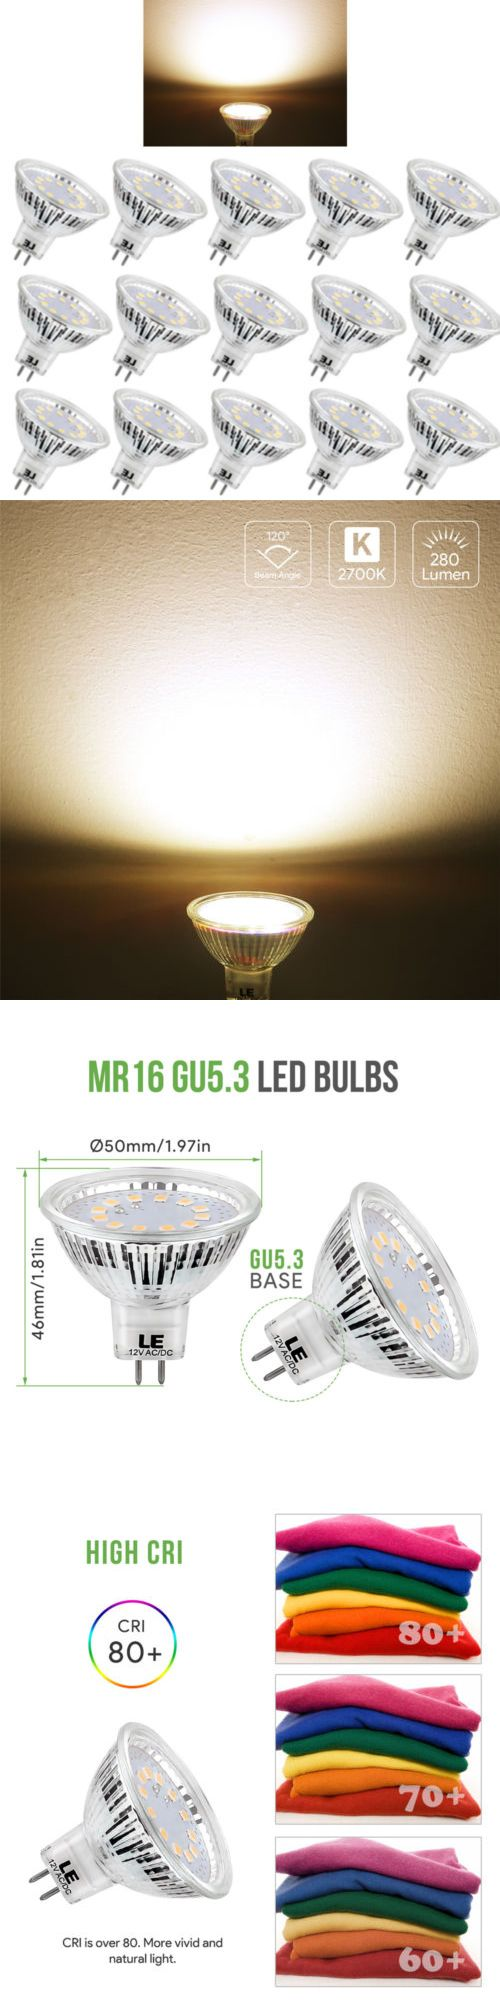 12w led 5050smd corn bulb spot light warm white lamp g4 ebay - Light Bulbs 20706 15pcs Mr16 Led Light Bulbs Gu5 3 Base Replace 35w Equivalent